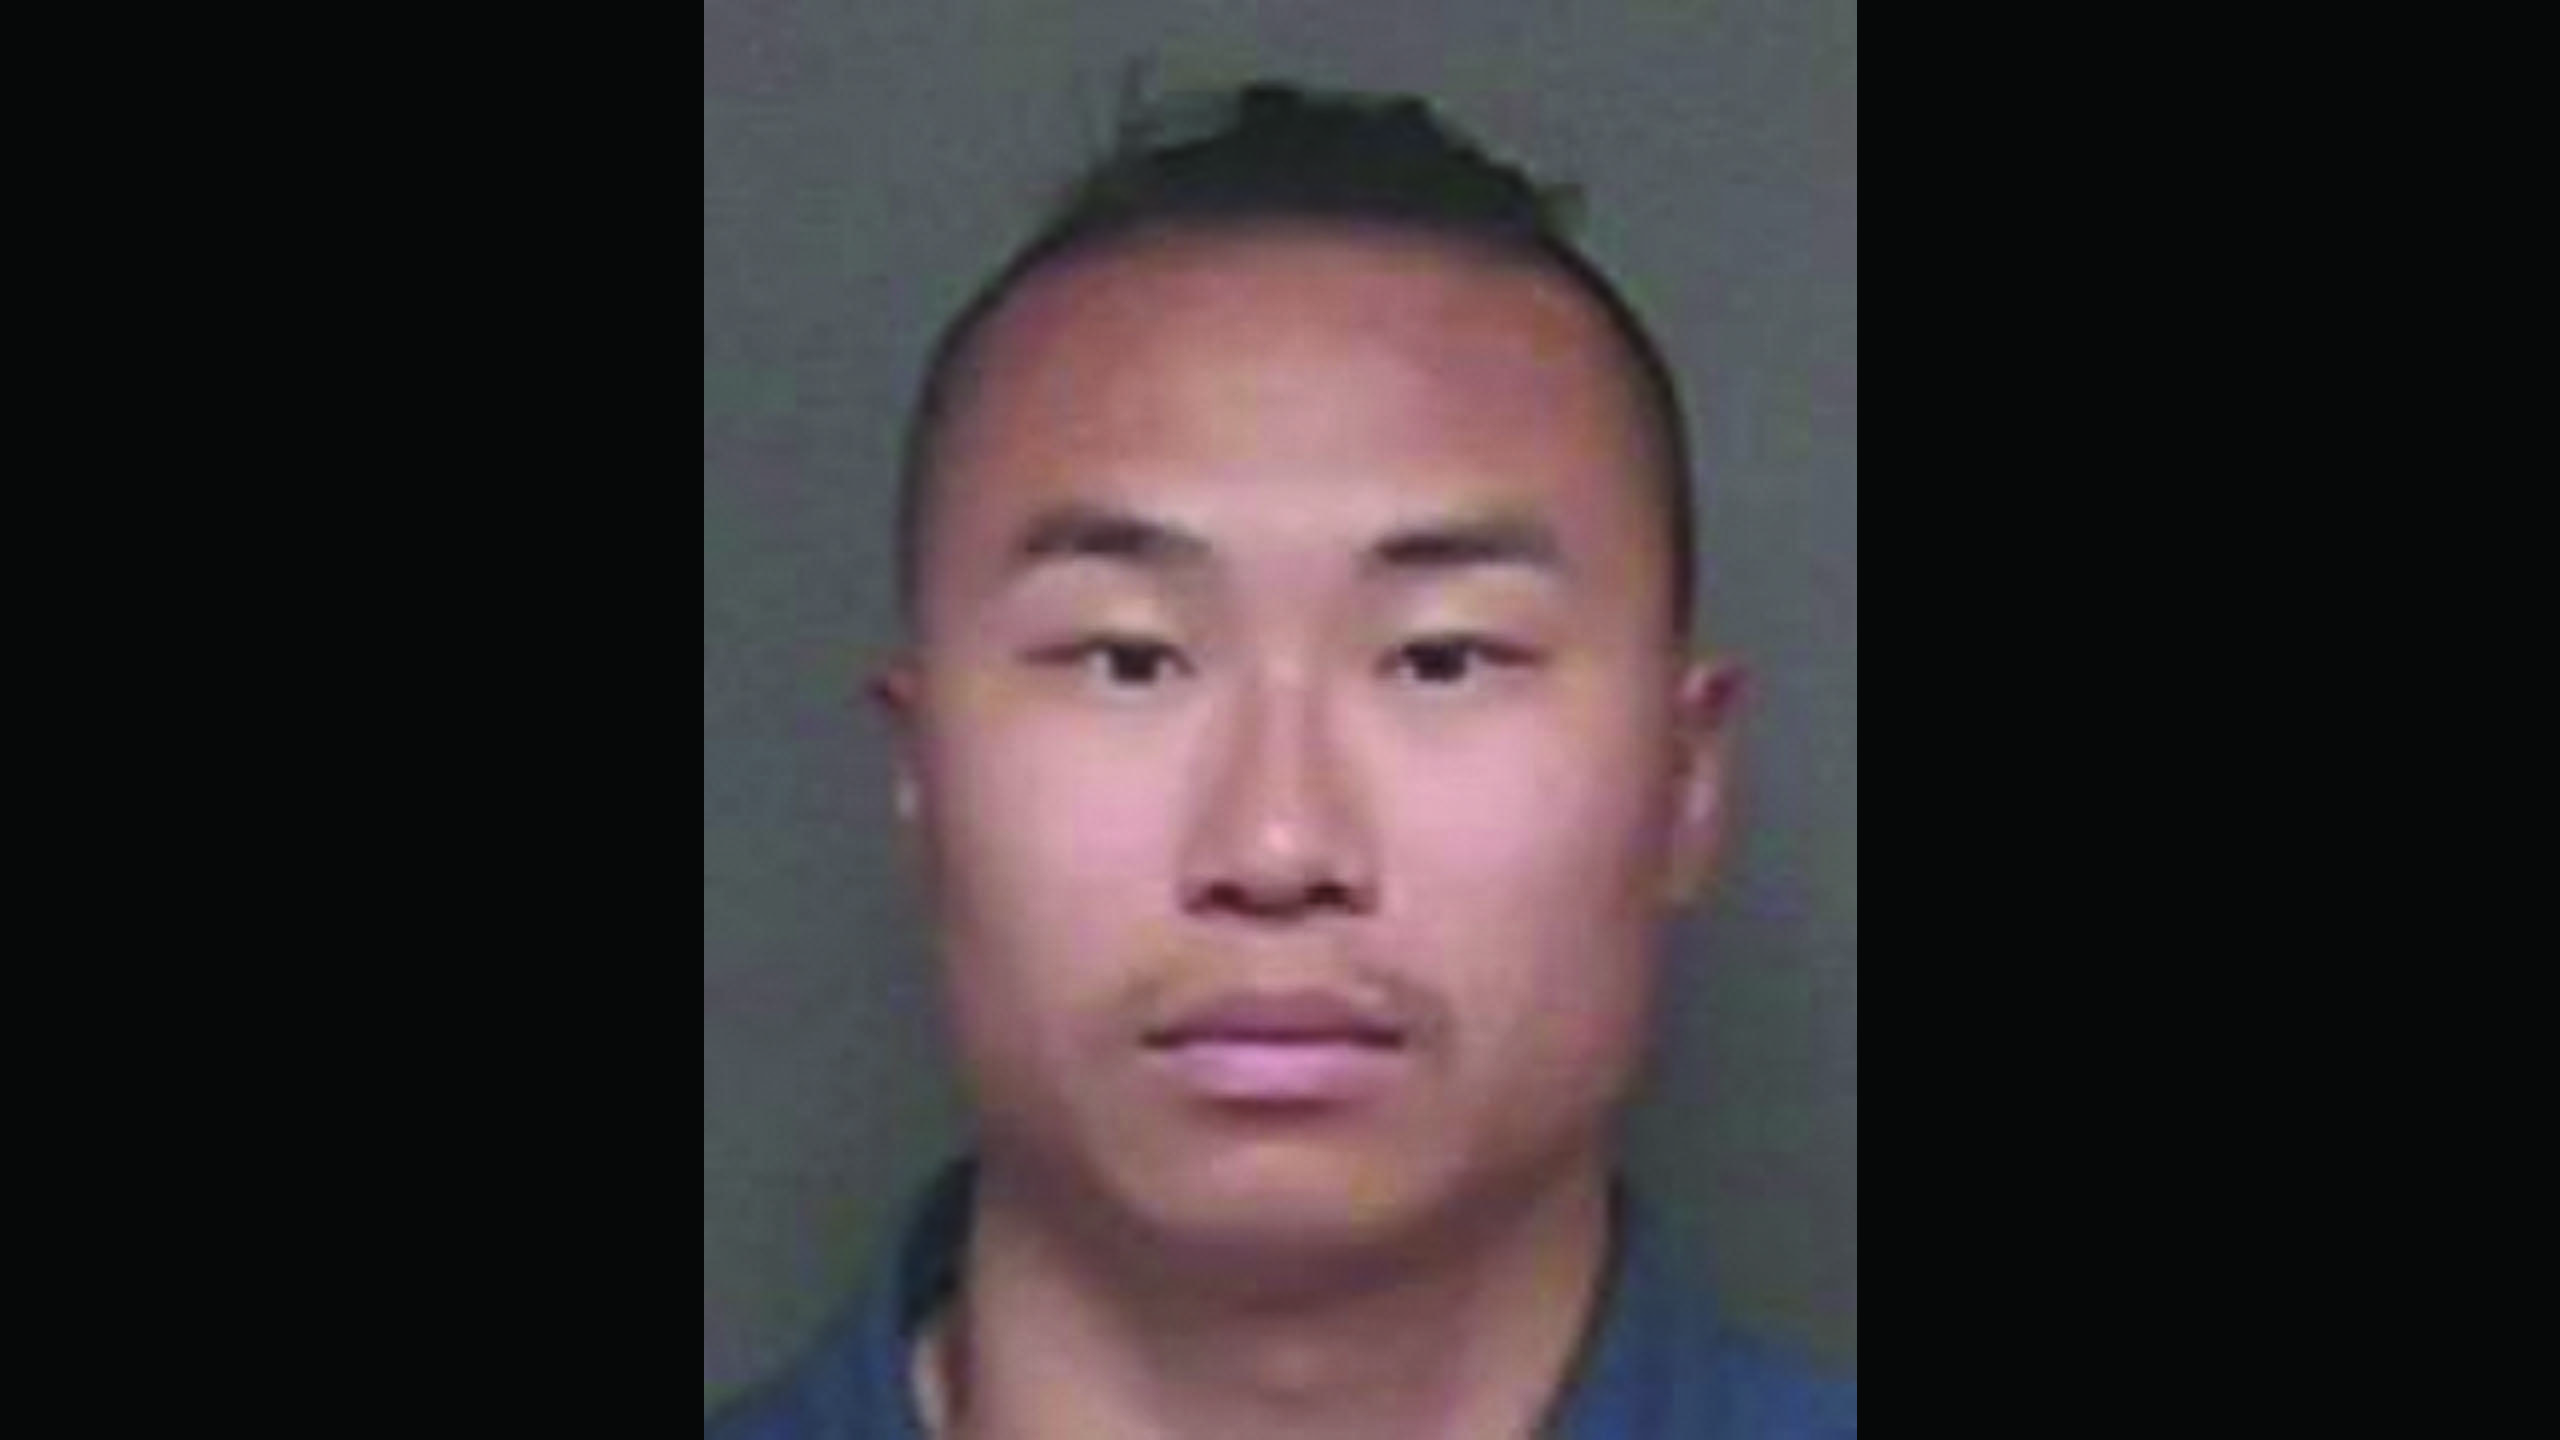 The image shows a photo of a young Asian man with short black hair.